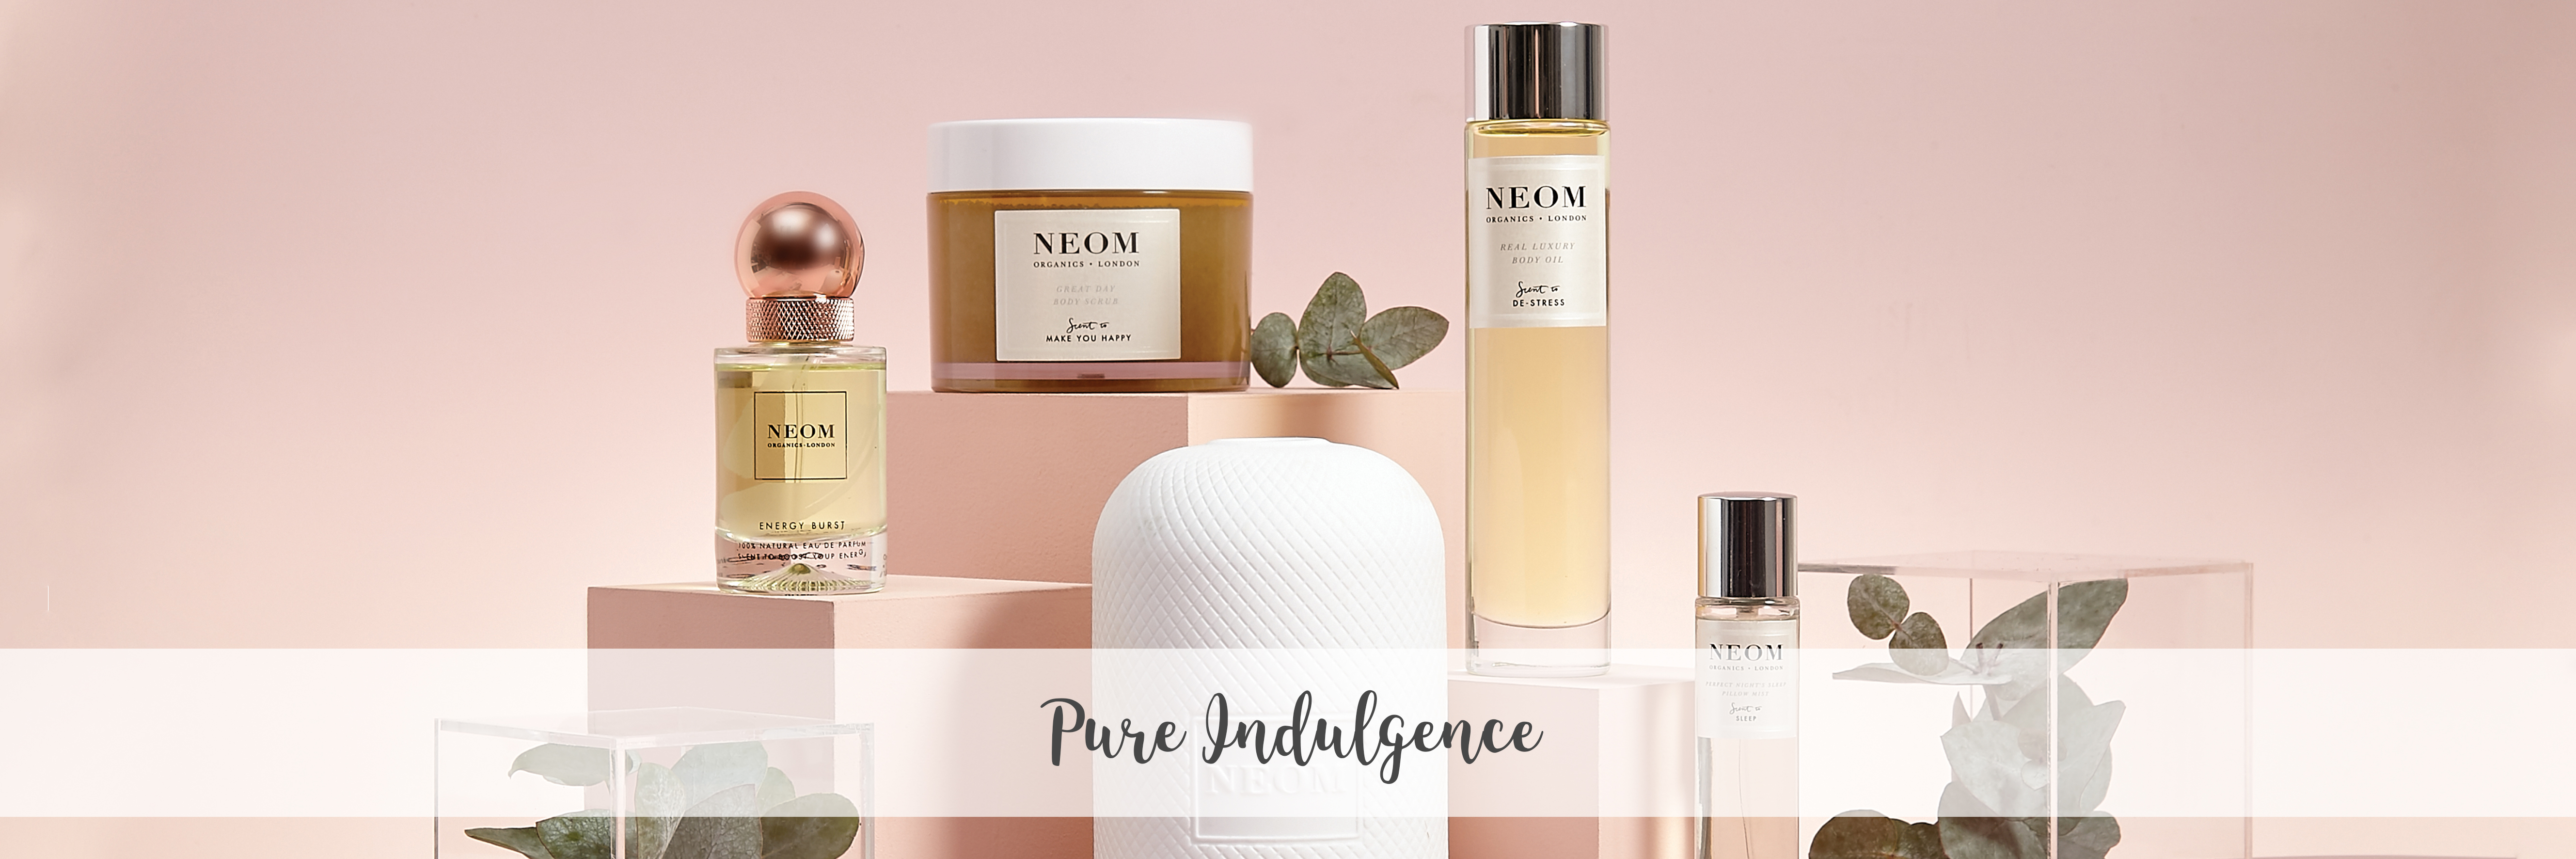 Neom Home Fragrance